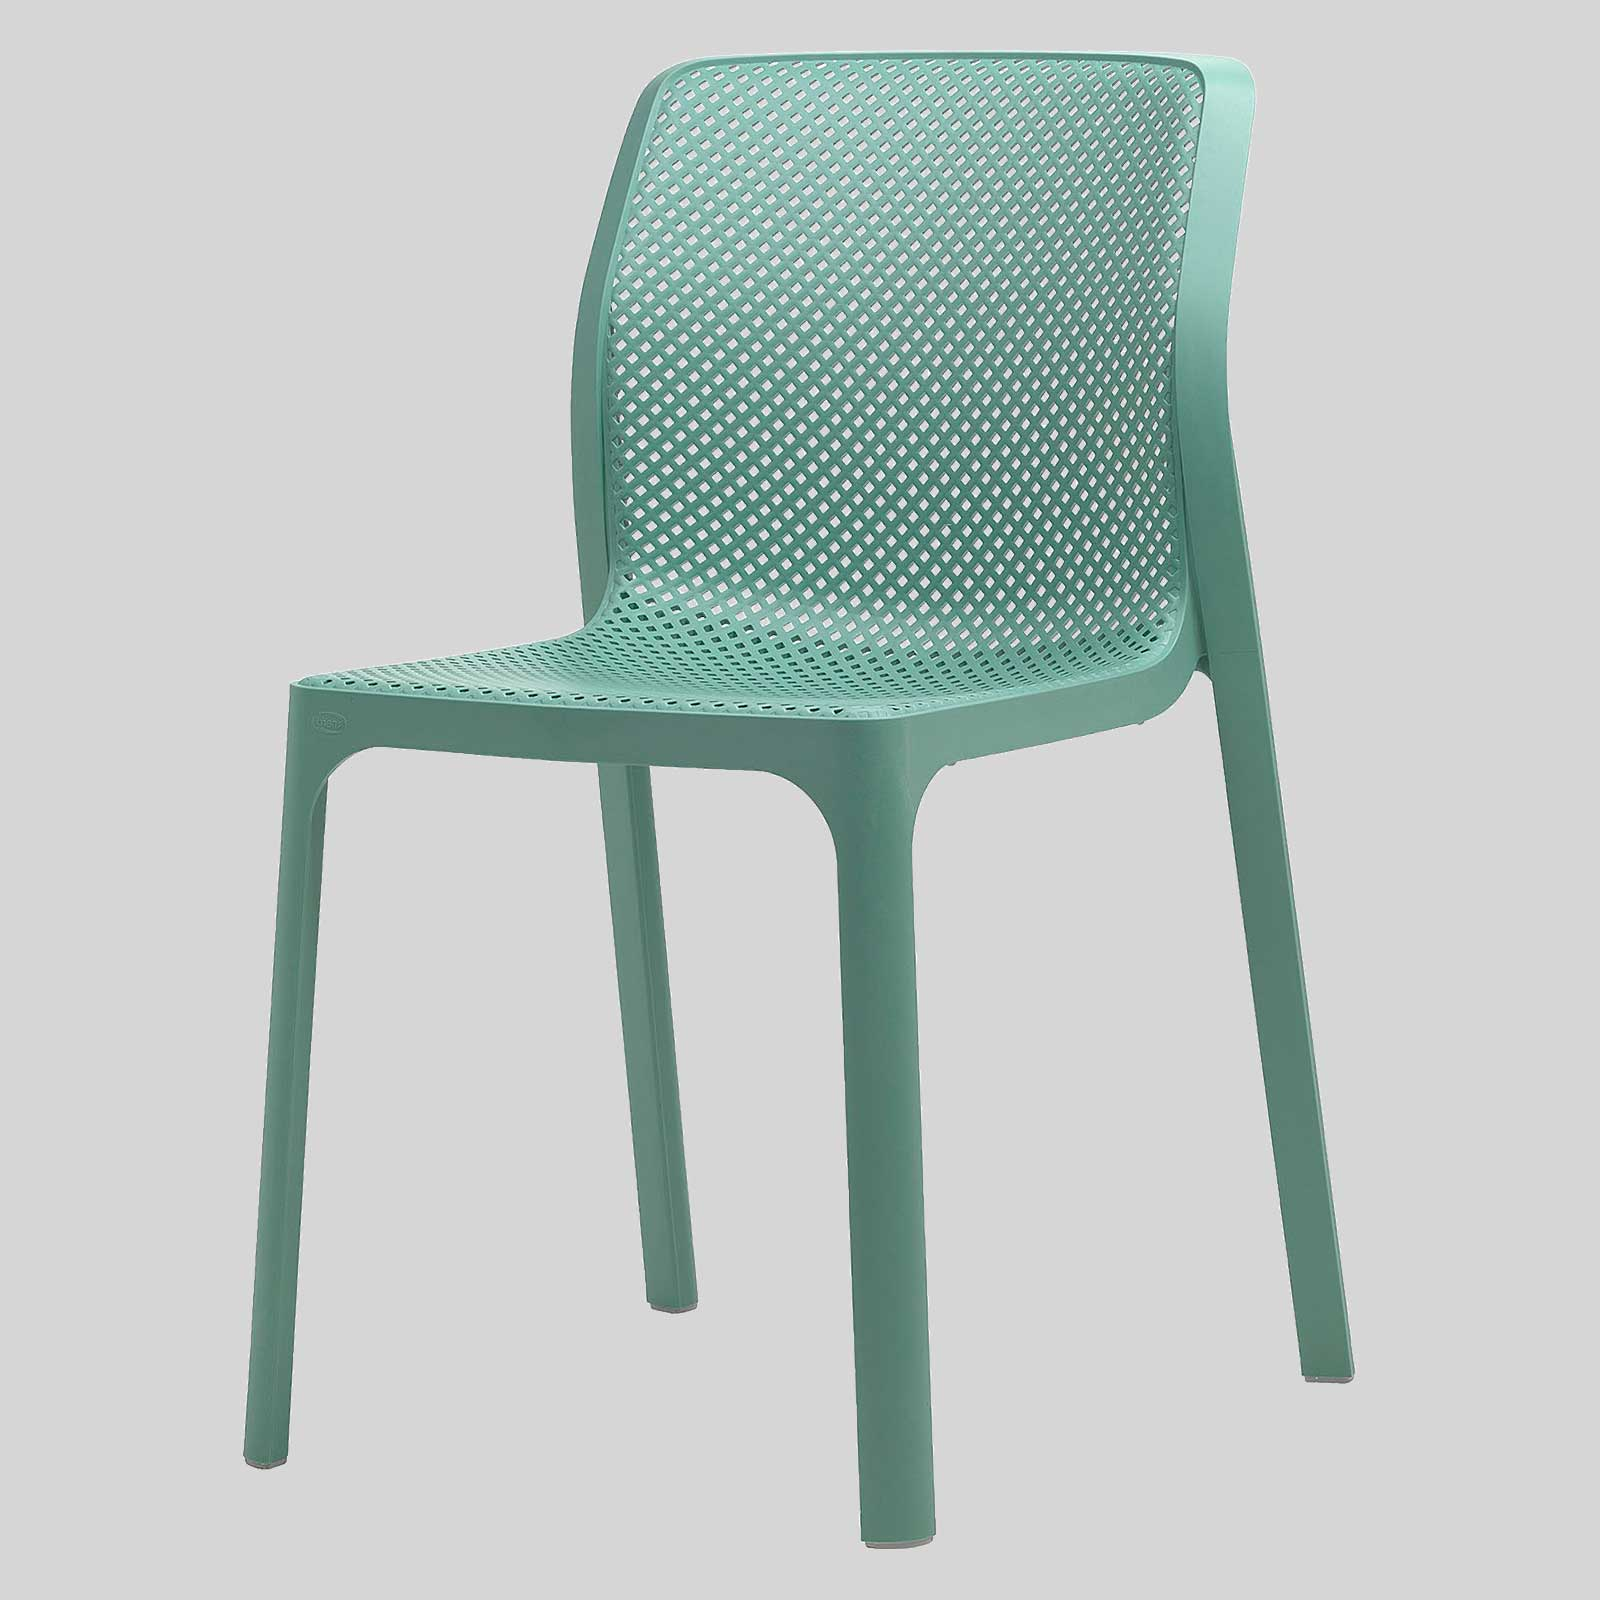 Plastic Cafe Chairs for Outdoor Use Mette